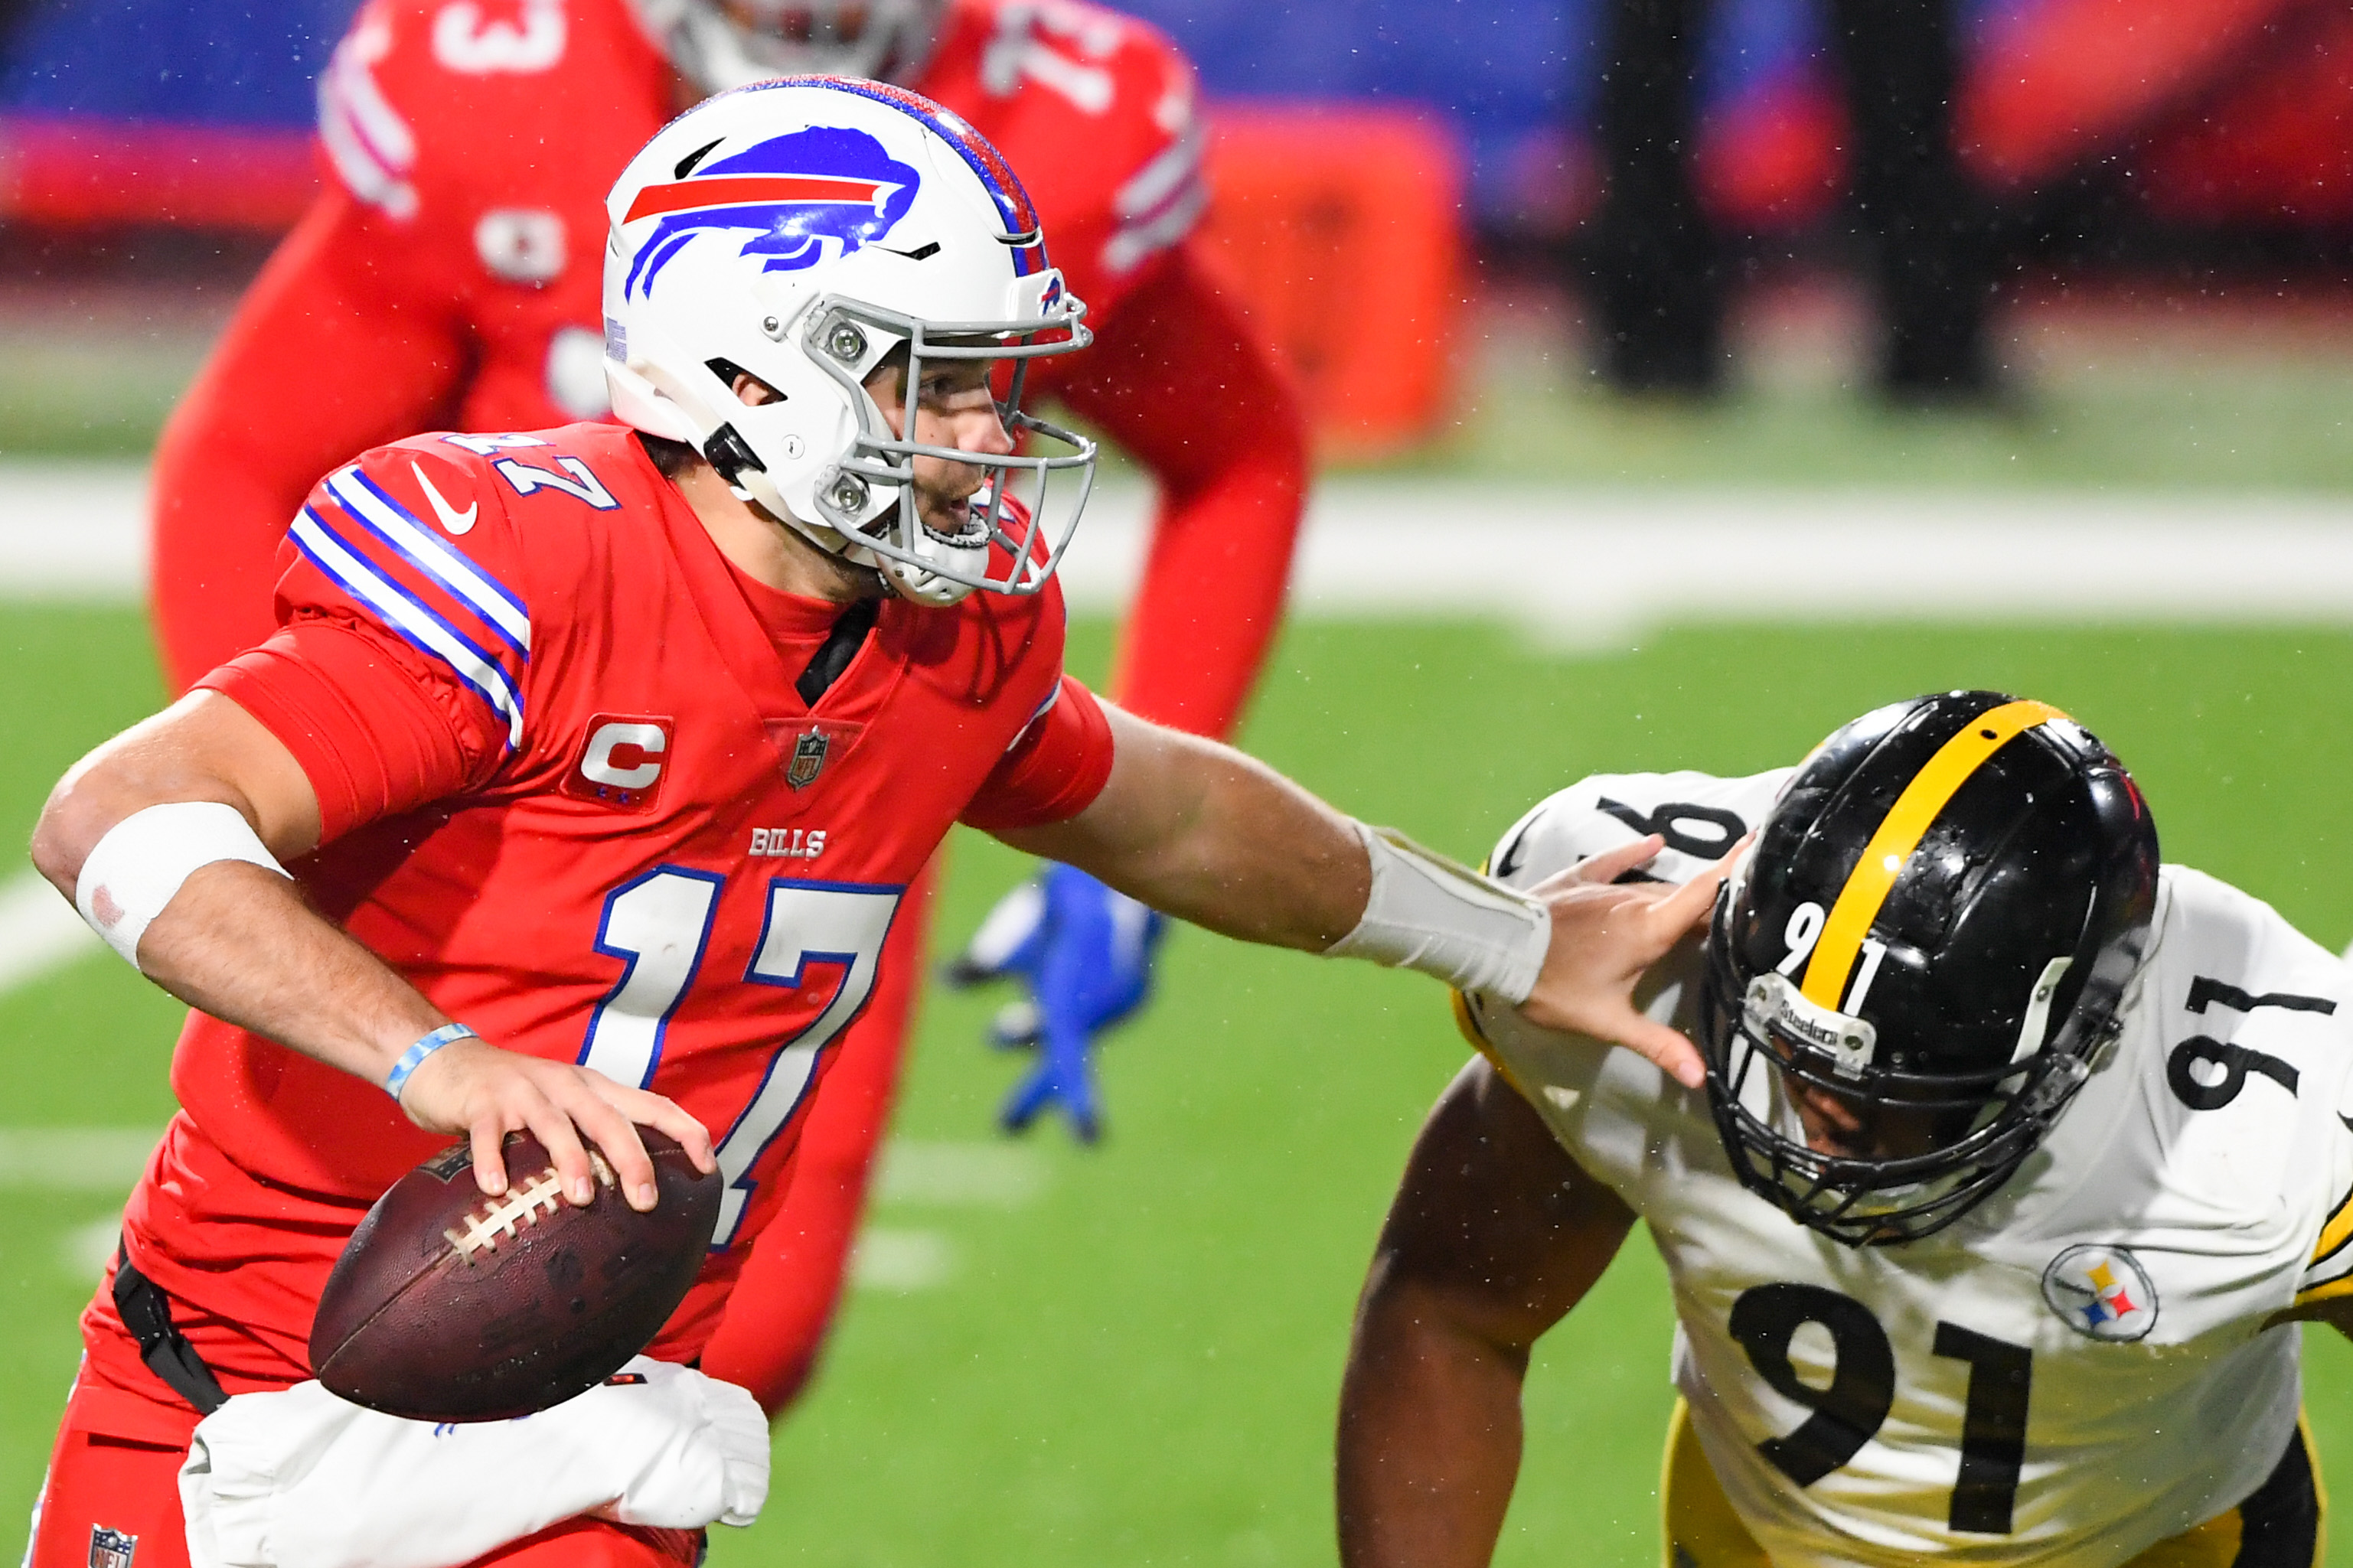 Buffalo Bills quarterback Josh Allen (17) avoids Pittsburgh Steelers defensive end Stephon Tuitt (91) while running with the ball during the second quarter at Bills Stadium.